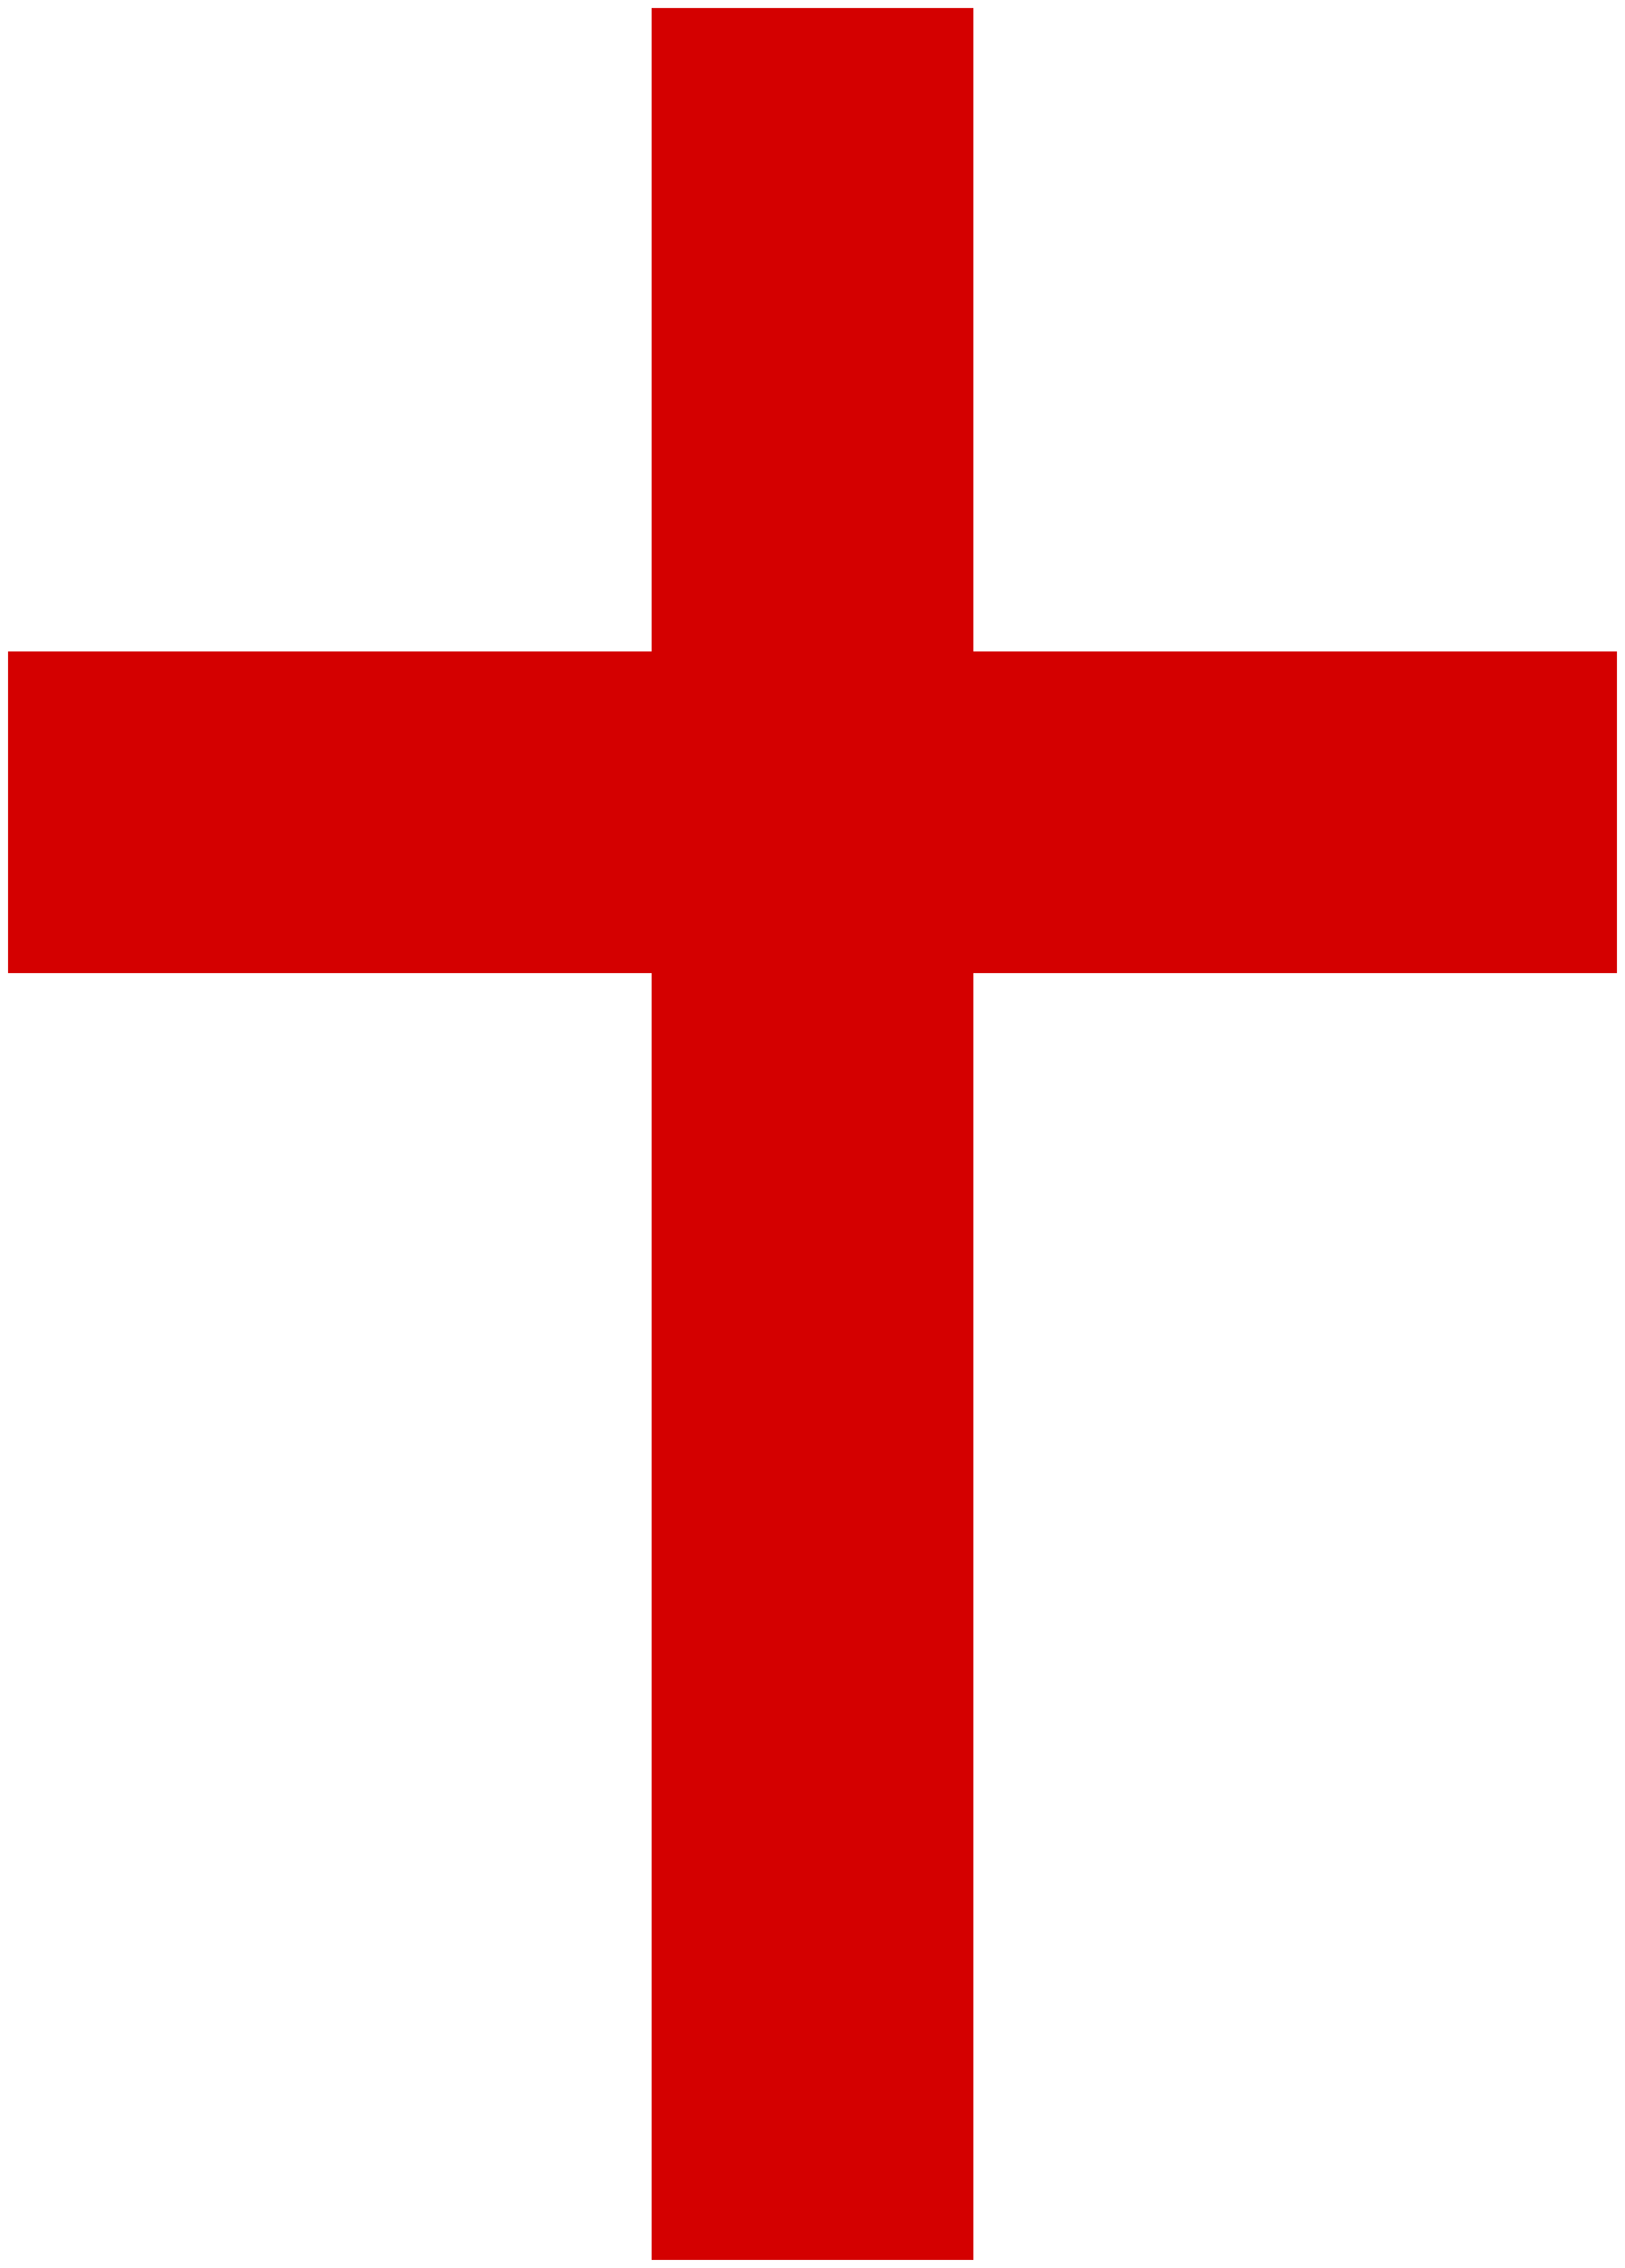 Christian Cross Clipart PNG Image